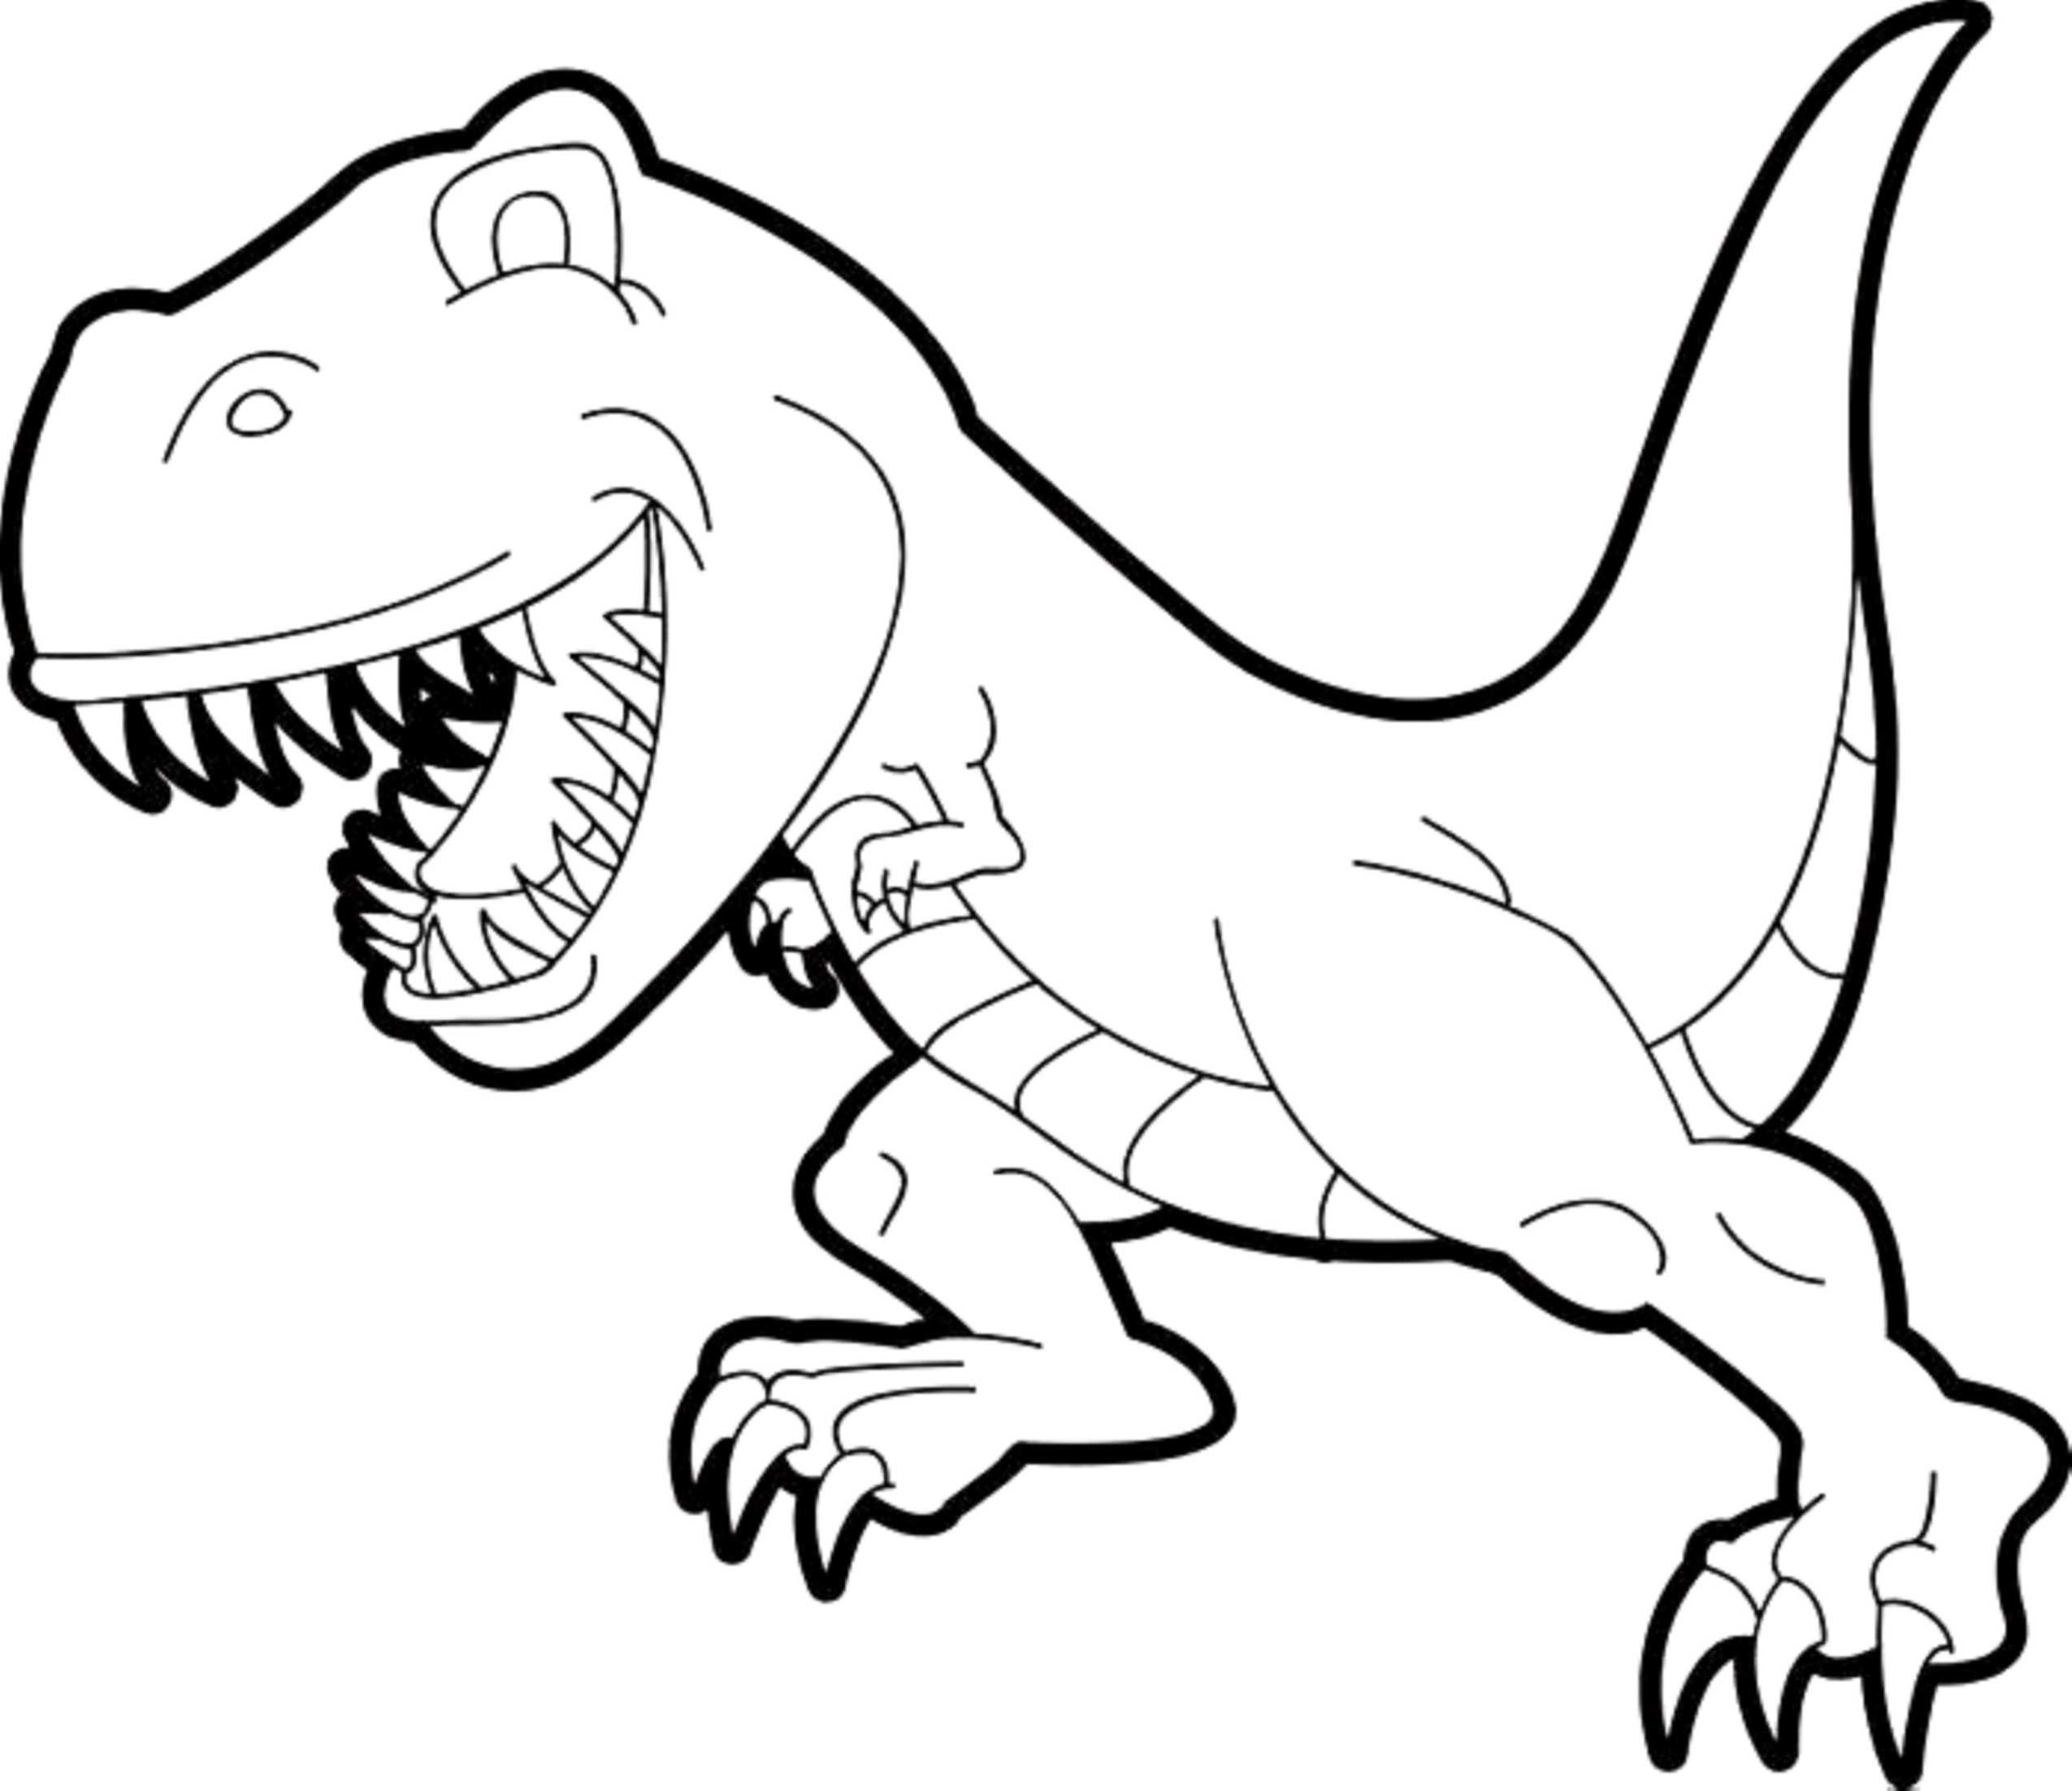 Simple T Rex Coloring Pages | Dinosaur coloring pages ...